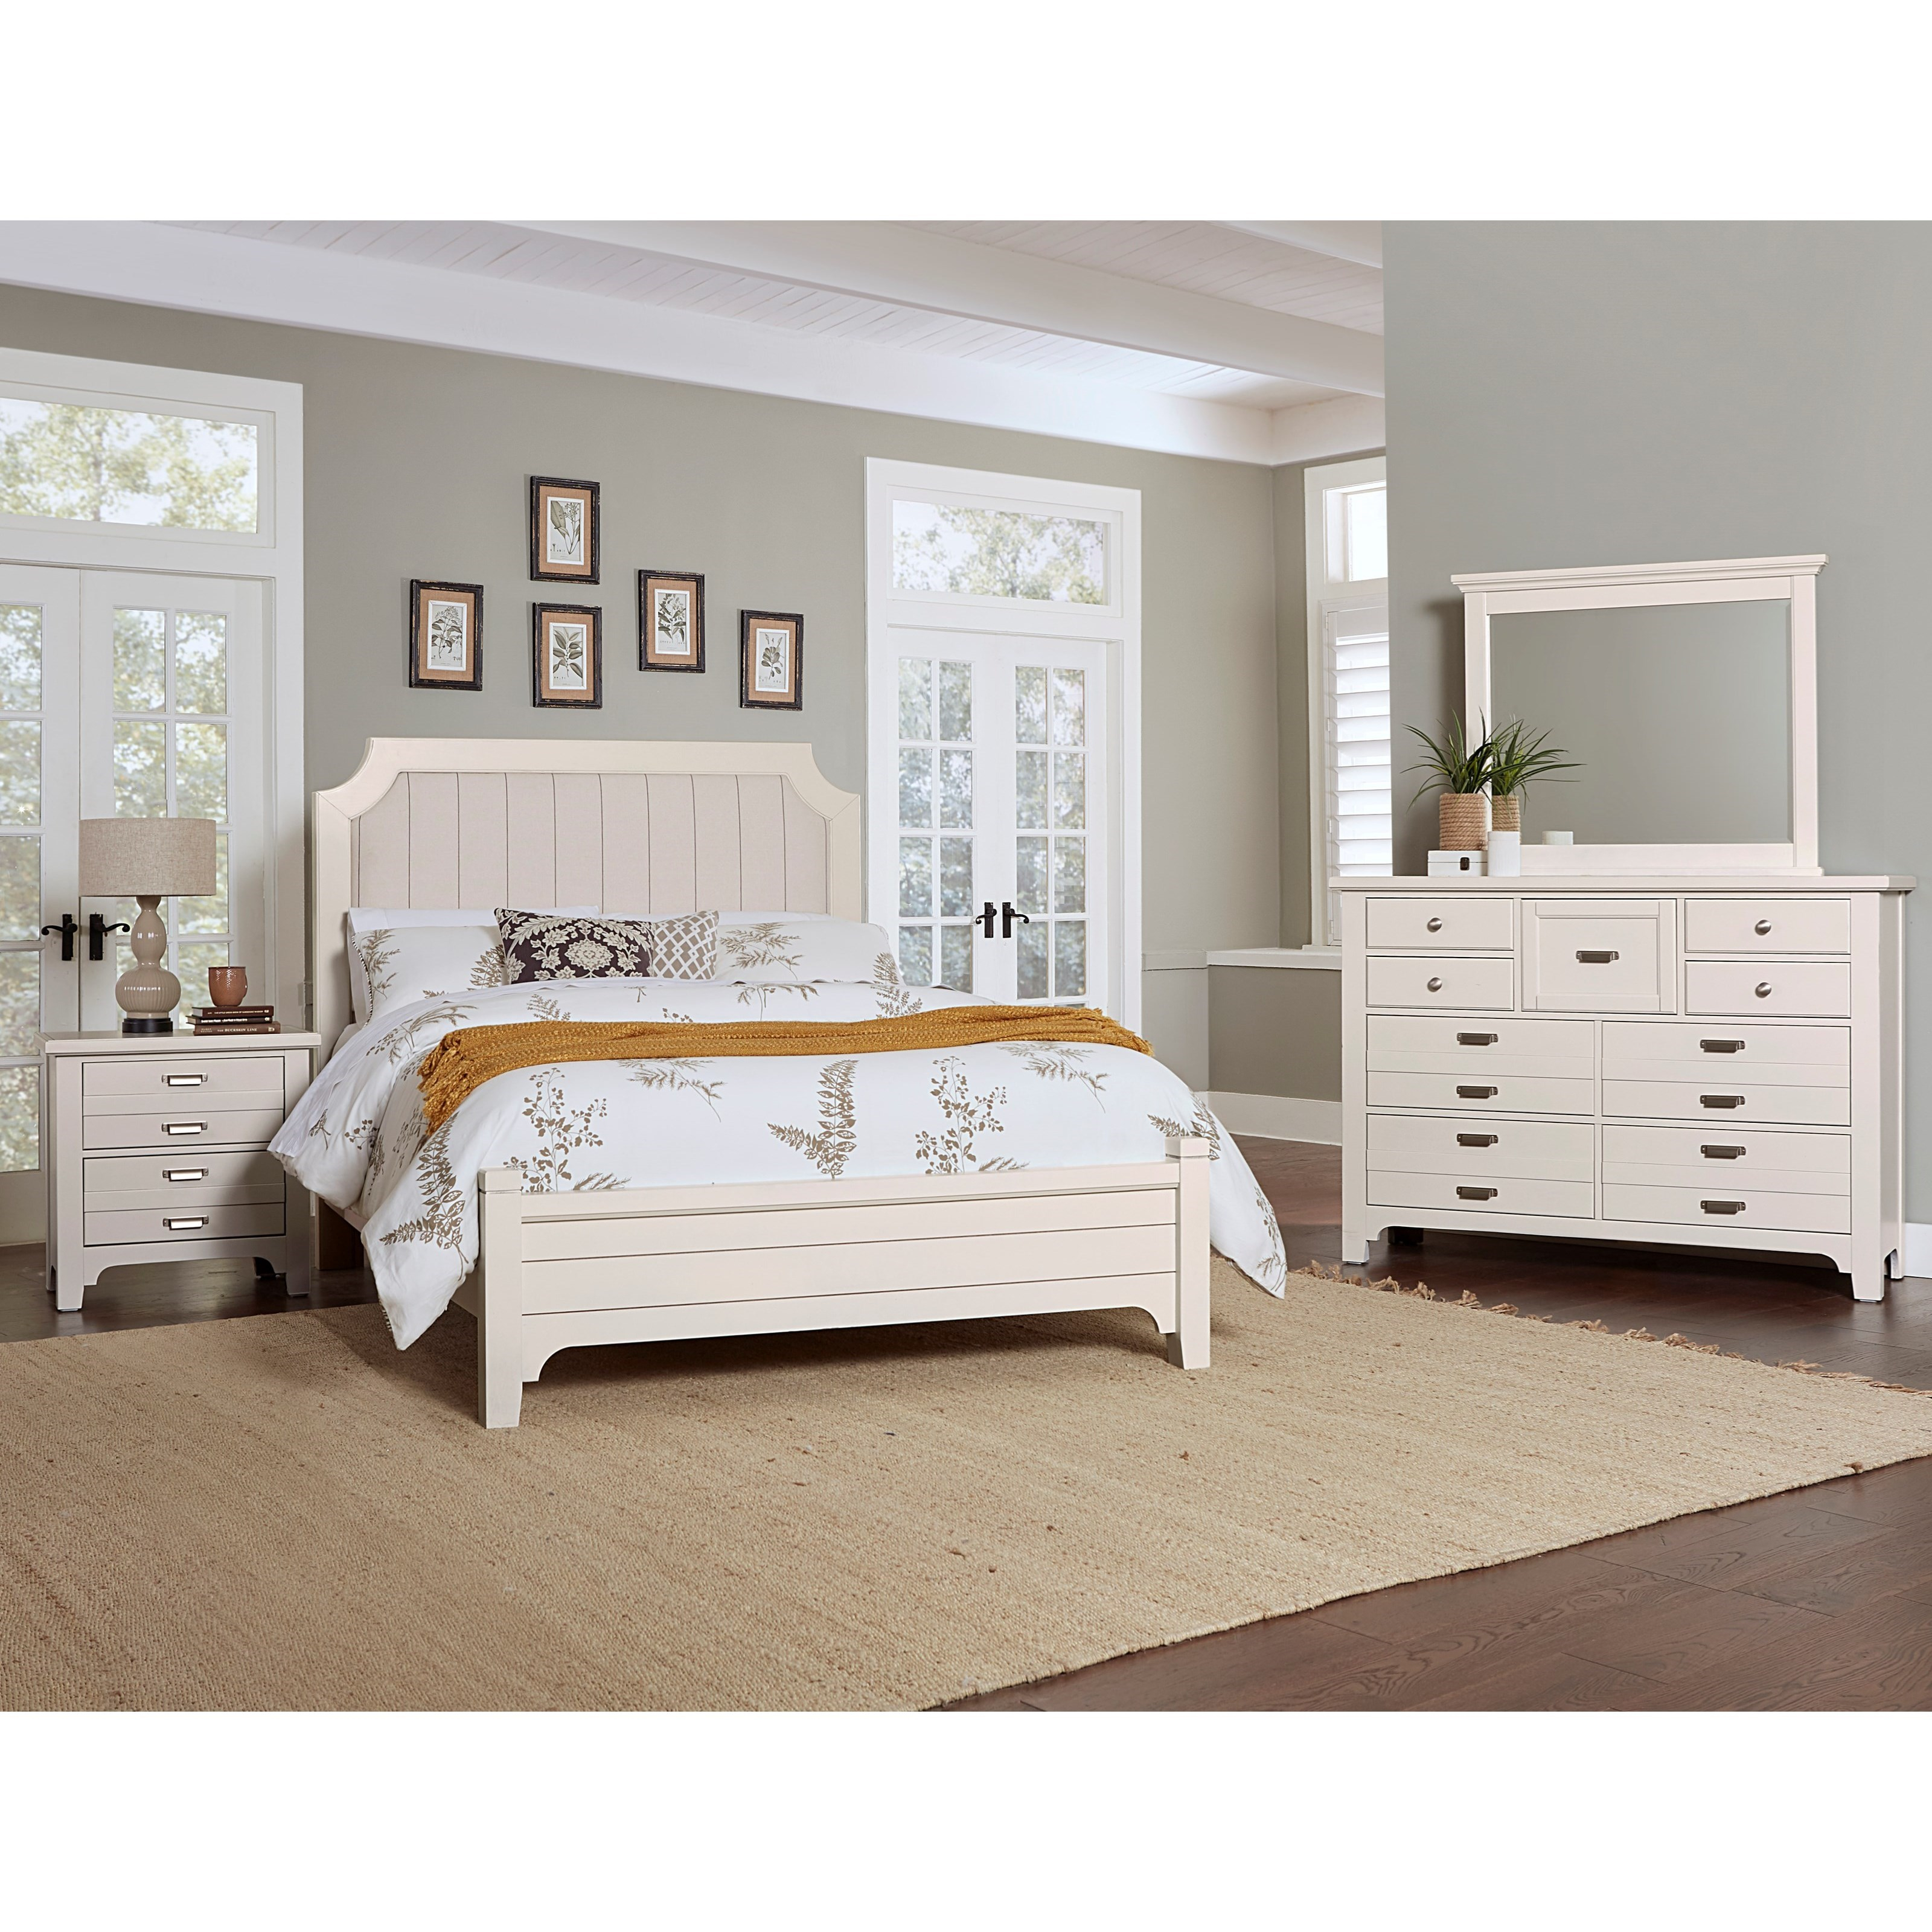 Bungalow Queen Bedroom Group by Laurel Mercantile Co. at Johnny Janosik